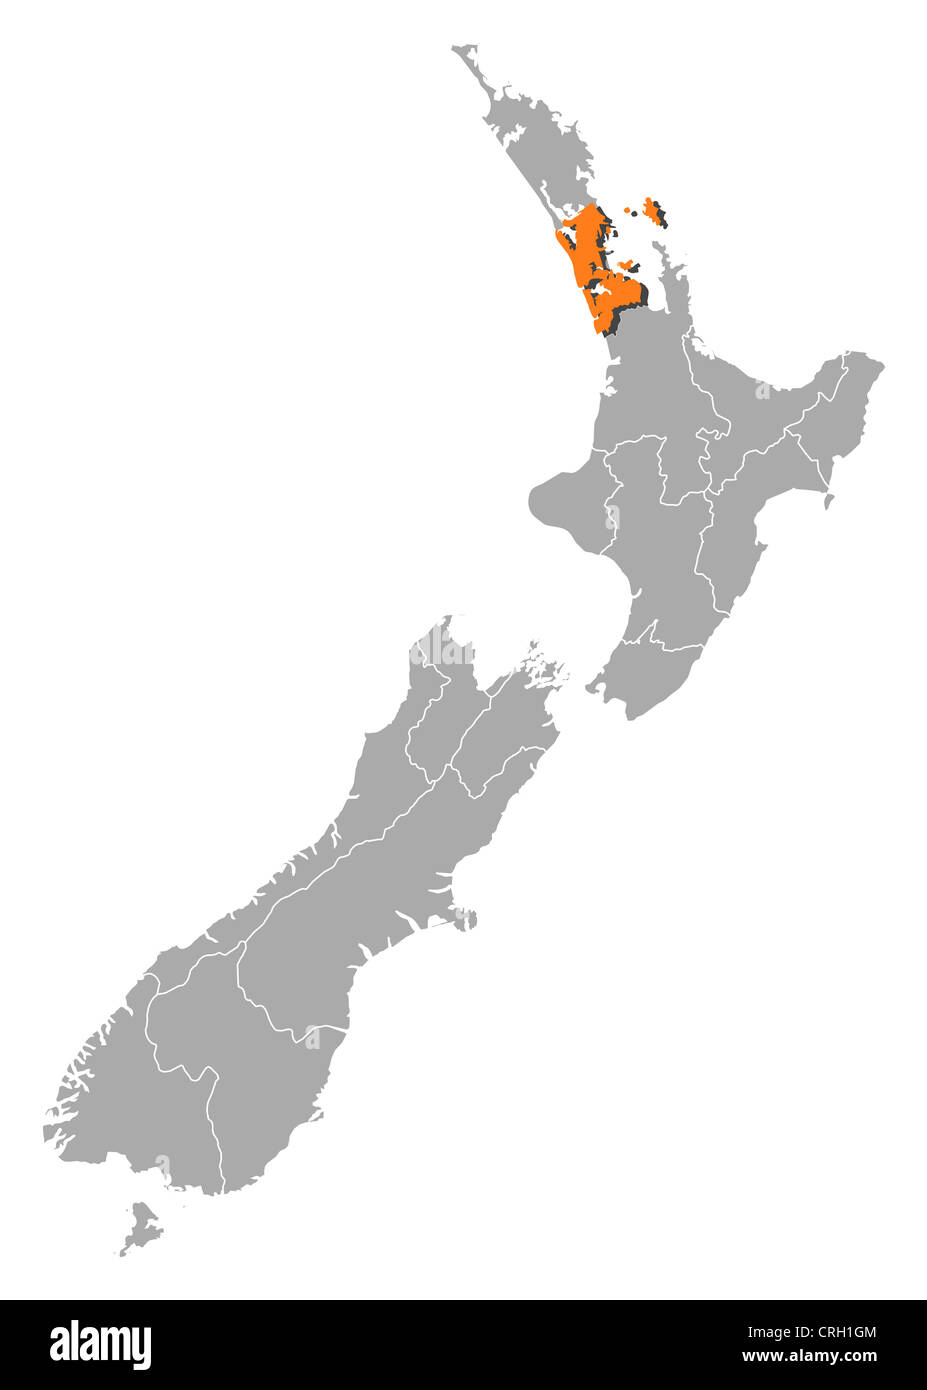 Map New Zealand Regions.Political Map Of New Zealand With The Several Regions Where Auckland